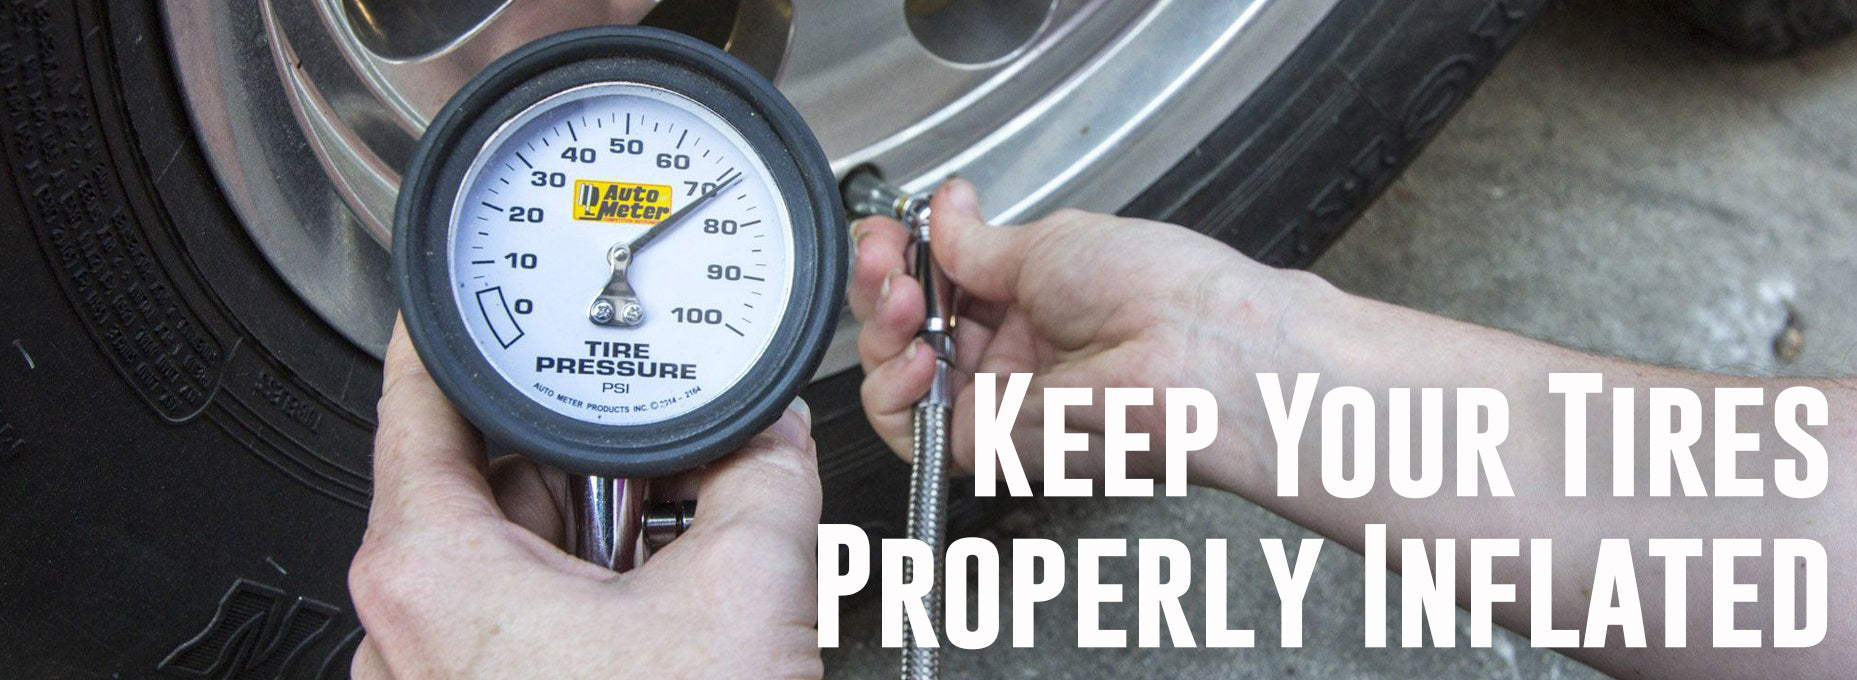 Keep Tires Properly Inflated: Tire Gauges